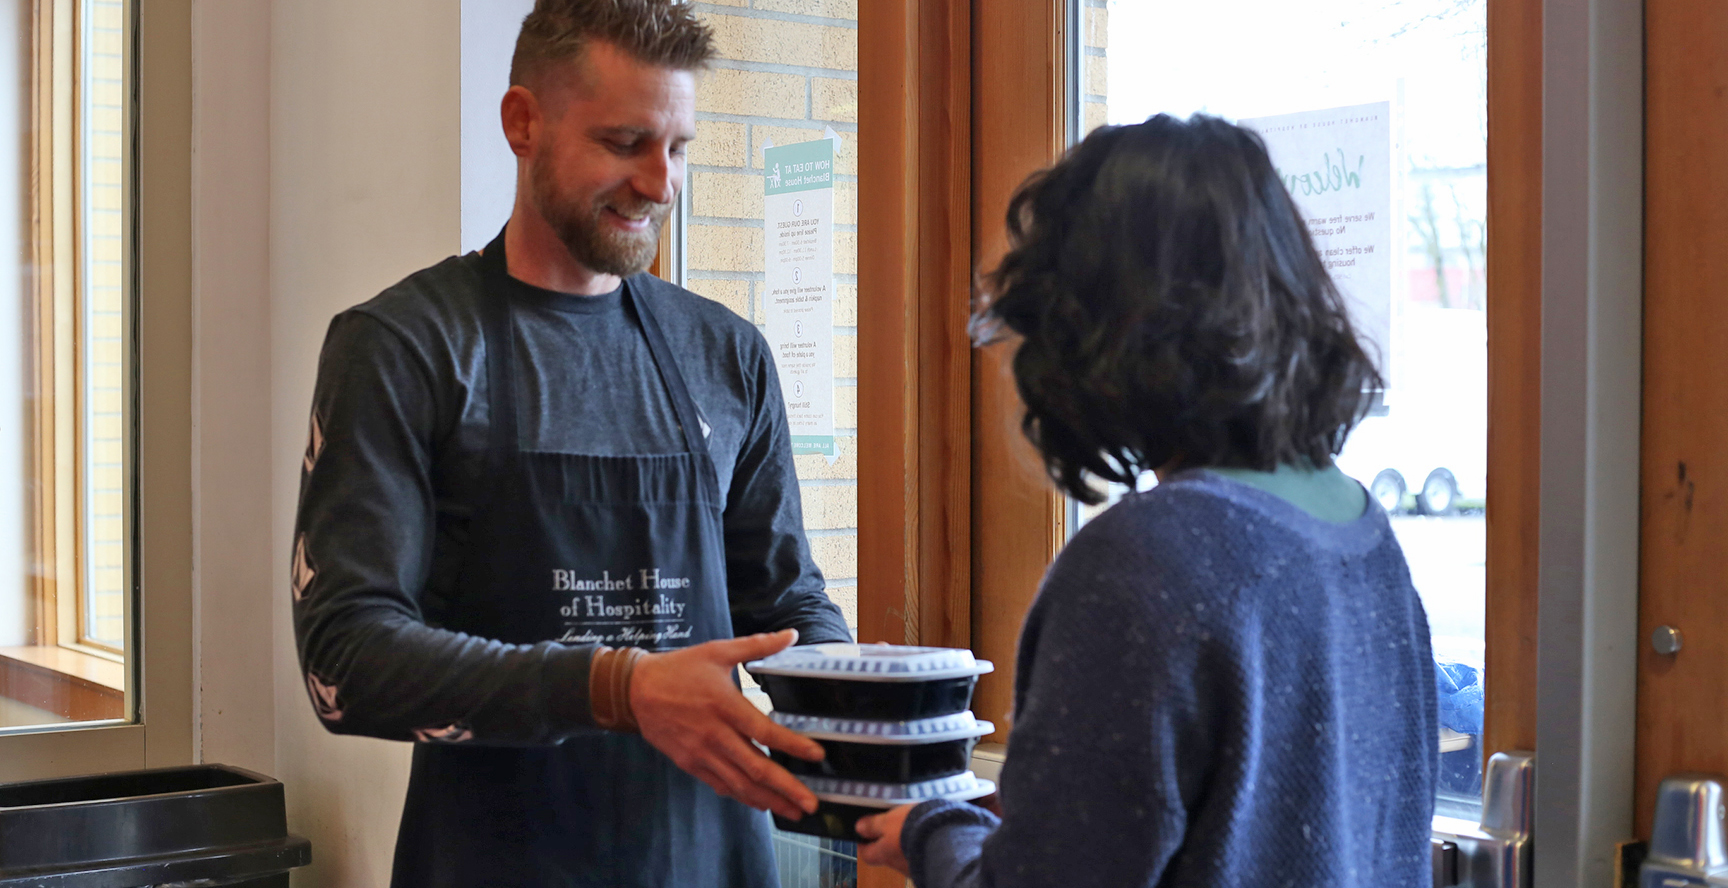 "March 16, 2020 Dear Blanchet House Community, Just yesterday, I wrote to you about our commitment to serve meals during the COVID-19 crisis. Today, Governor Kate Brown ordered all eateries like our Founders Café to close starting tomorrow. The order also bans public gatherings of more than 25 people, with the CDC recommending gatherings of no more than ten. While I endorse this move, I am sad that we have to close to perhaps the last indoor refuge remaining for our meal guests. But this doesn't mean we will stop serving meals! We will not abandon the hundreds of people who depend on us for food. Our kitchen staff will transition to preparing and packing to-go meals, which we will pass out at both entrances—NW 3rd Ave. and NW Glisan St.—so as to minimize lines and crowding. We will serve three times a day like we normally do; our hope is to provide as many hot meals as we can each day. We need your help to continue feeding people by doing the following: 1. Volunteer. Help pack to-go meals and run them to doors for handing out. Volunteers age 60 and over are still strongly encouraged to stay home, as well as any volunteers exhibiting any signs of illness. Email us at volunteer@blanchethouse.org if you want to help. 2. Purchase To-Go Containers and Forks. Containers will costs us approximately $33 per meal. Consider funding an entire day's worth of containers for $100. 3. Donate To-Go Food. Send via Amazon or drop off single-serving non-perishable food items or produce that we can use to supplement our to-go meals to help our meal guests stretch their food. 4. Collect Clothing. The nights are still very cold. We need warm adult-sized clothes to give to our meal guests. Shop our Amazon wish list. We also need volunteers to sort and organize clothing! Dorothy Day, the woman who inspired our mission said, ""Charity is a recognition of a person's dignity and the personal response that this dignity should inspire."" Each of us face challenging days filled with uncertainty and dizzying change. Our staff and volunteers will continue to meet these challenges, inspired by the dignity of the people we serve. These are days we will remember. Days filled with grace and charity. Scott Kerman Executive Director, Blanchet House of Hospitality"